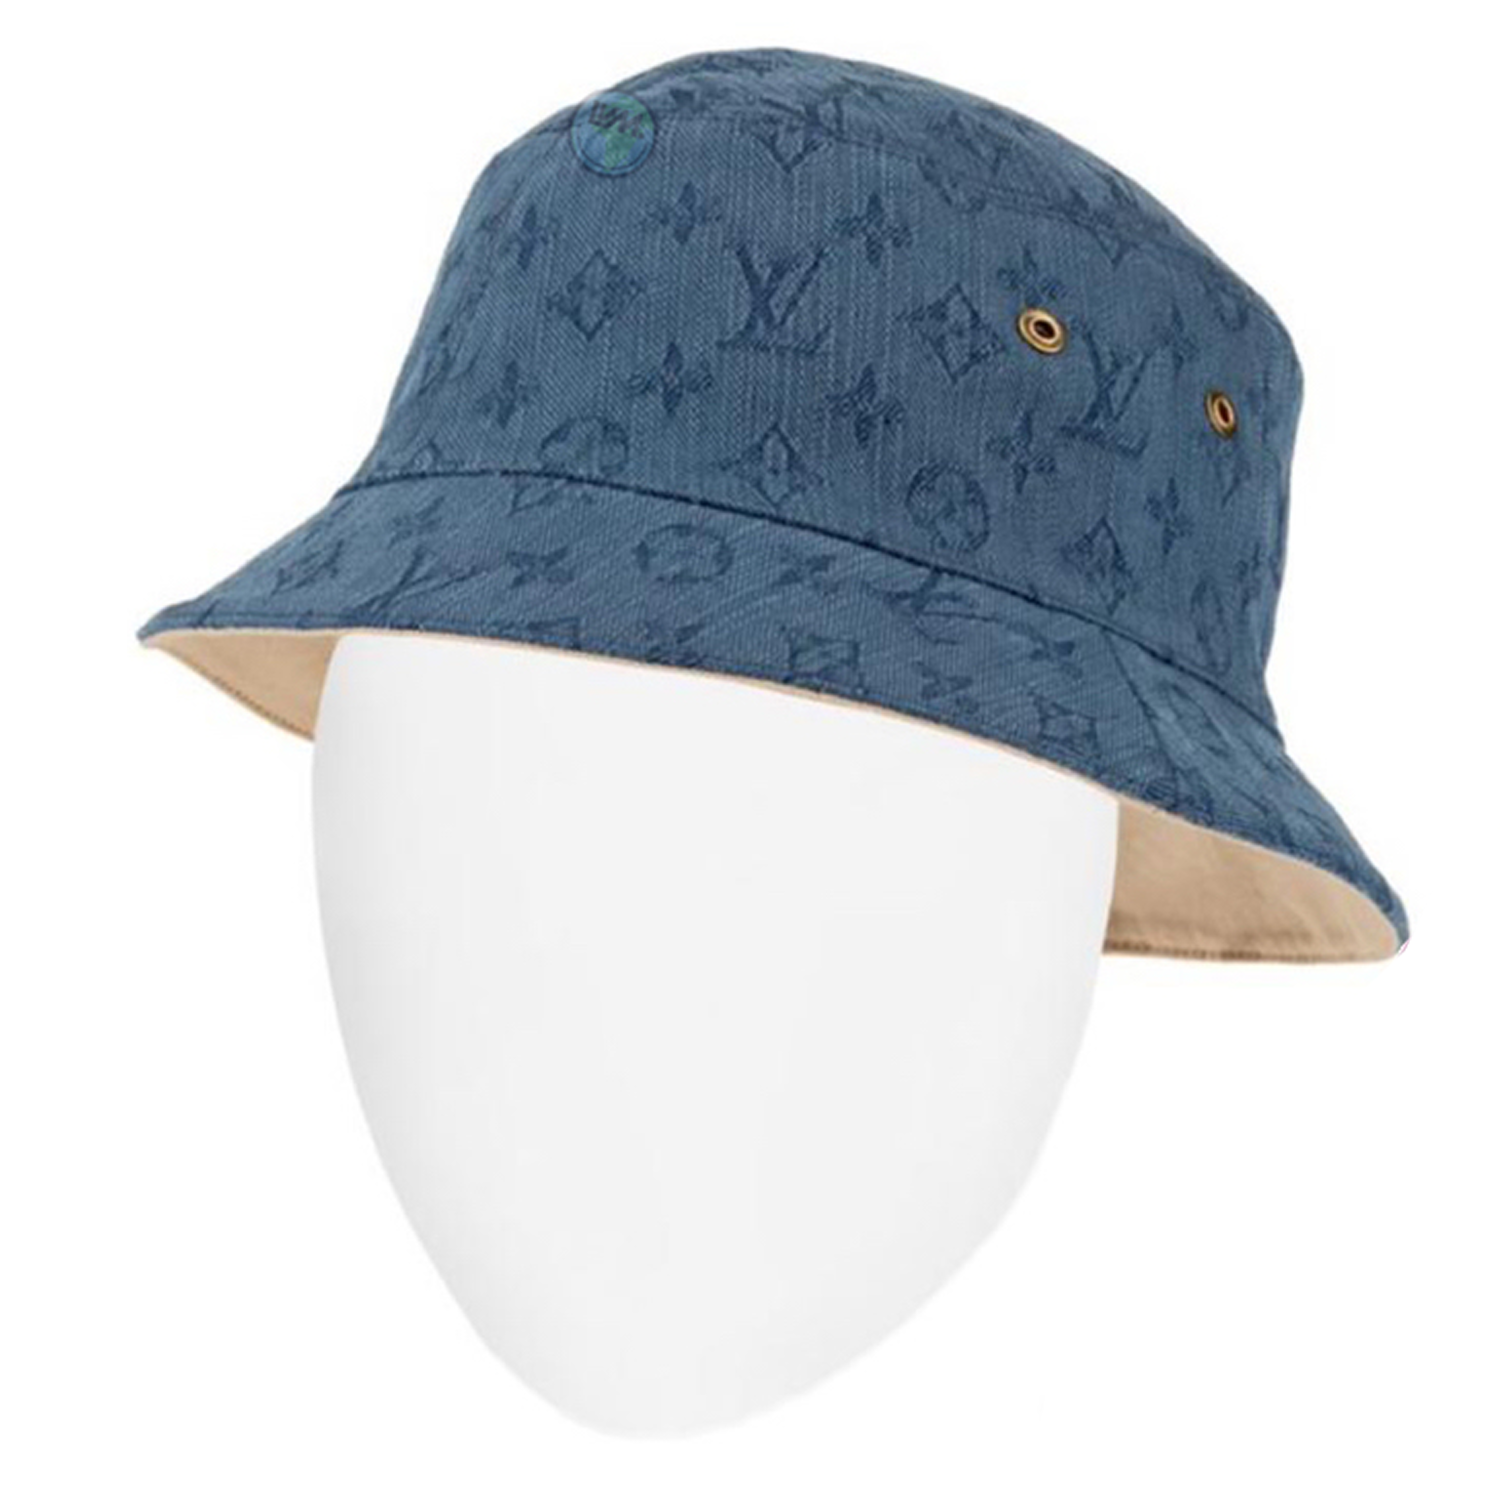 denim bucket hat - €350 $485mp2440monogram denim navy